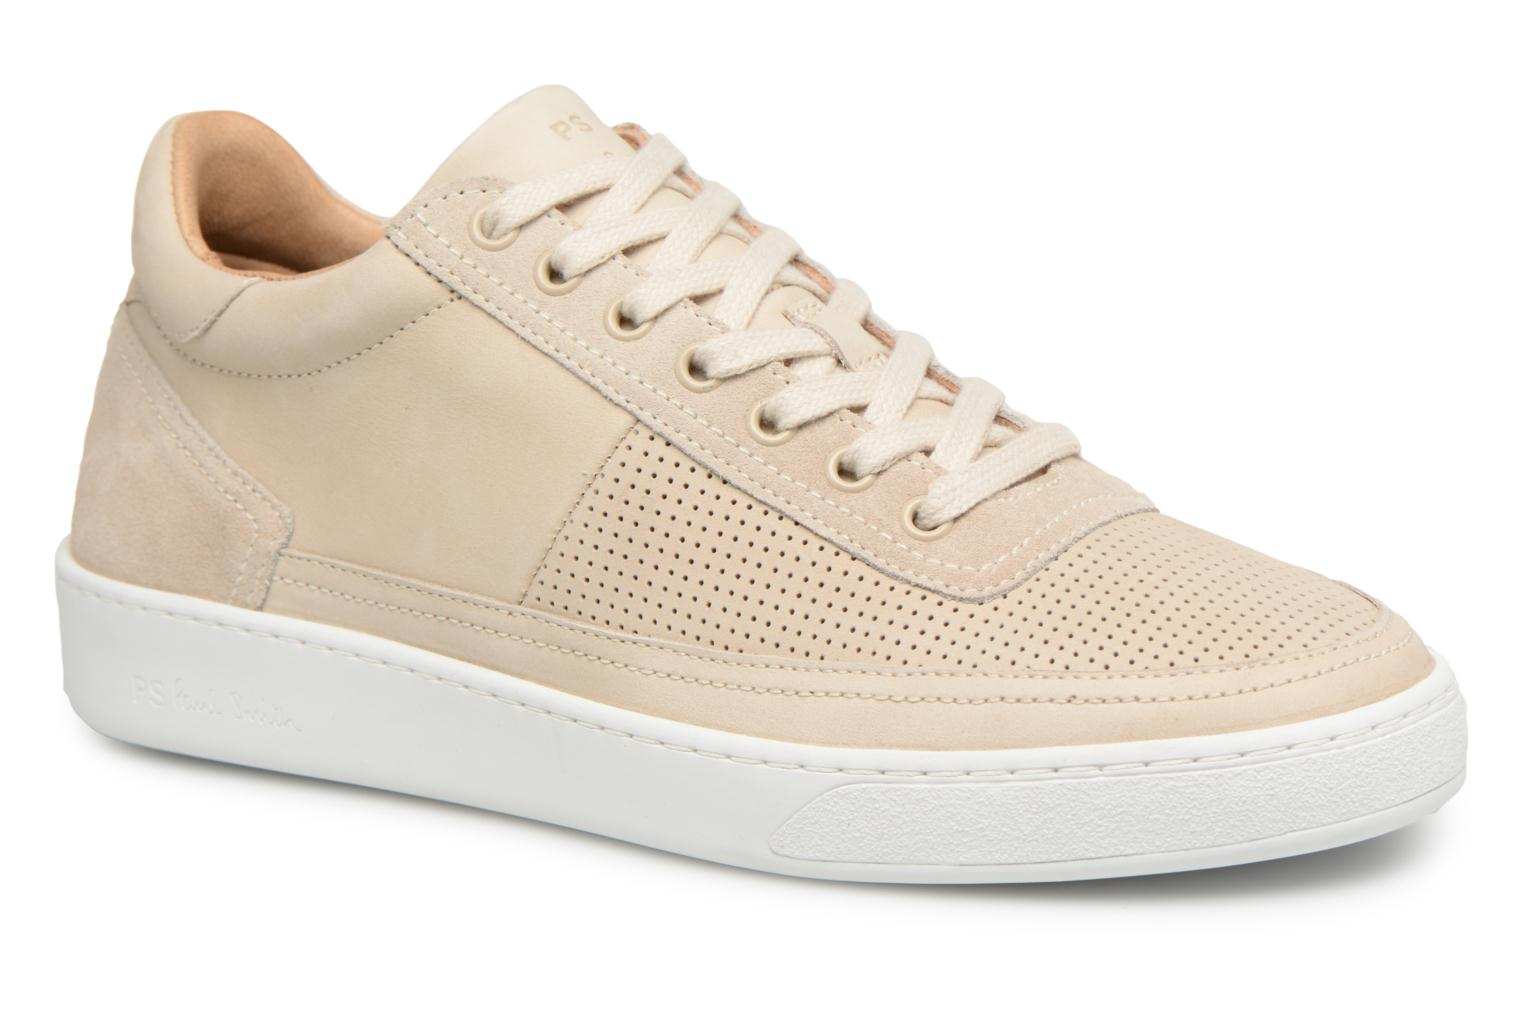 Marques Chaussure luxe homme Paul Smith homme Dizon IVORY 04